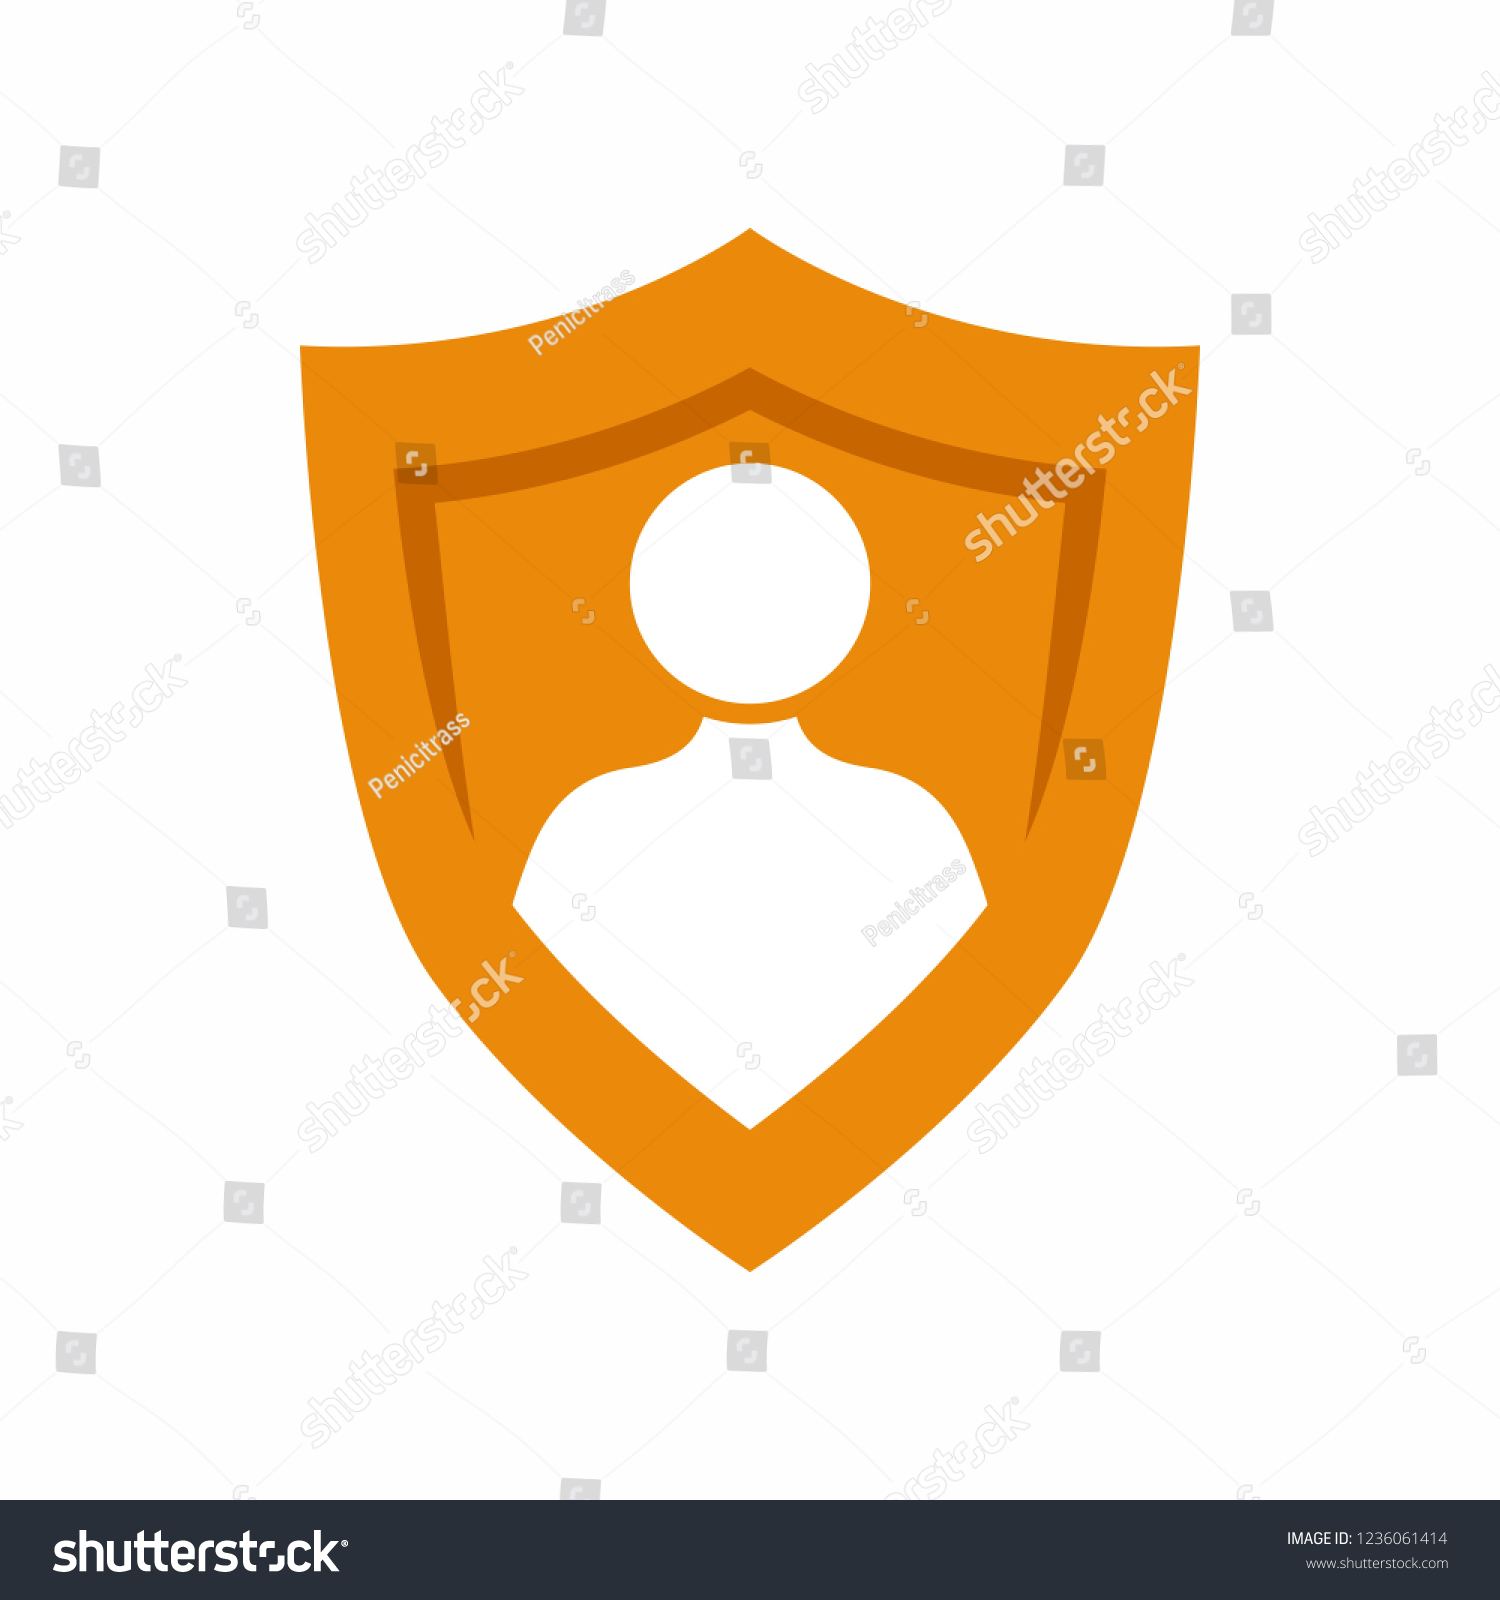 User Privacy Shield Guard Self Protection Stock Vector Royalty Free 1236061414